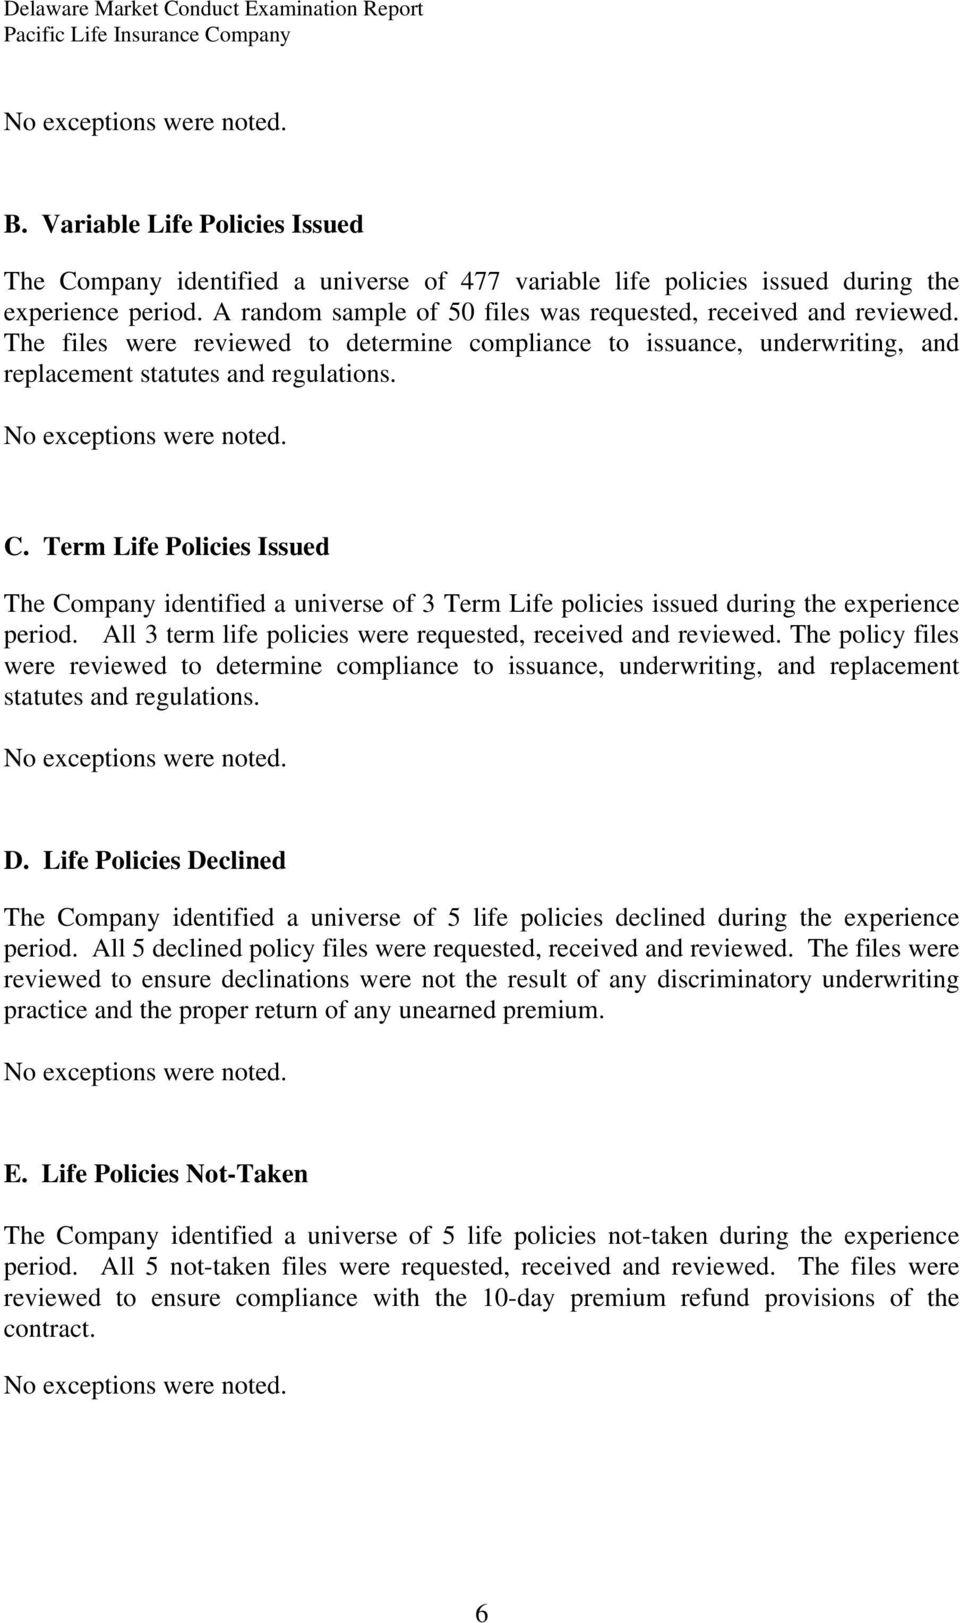 Term Life Policies Issued The Company identified a universe of 3 Term Life policies issued during the experience period. All 3 term life policies were requested, received and reviewed.